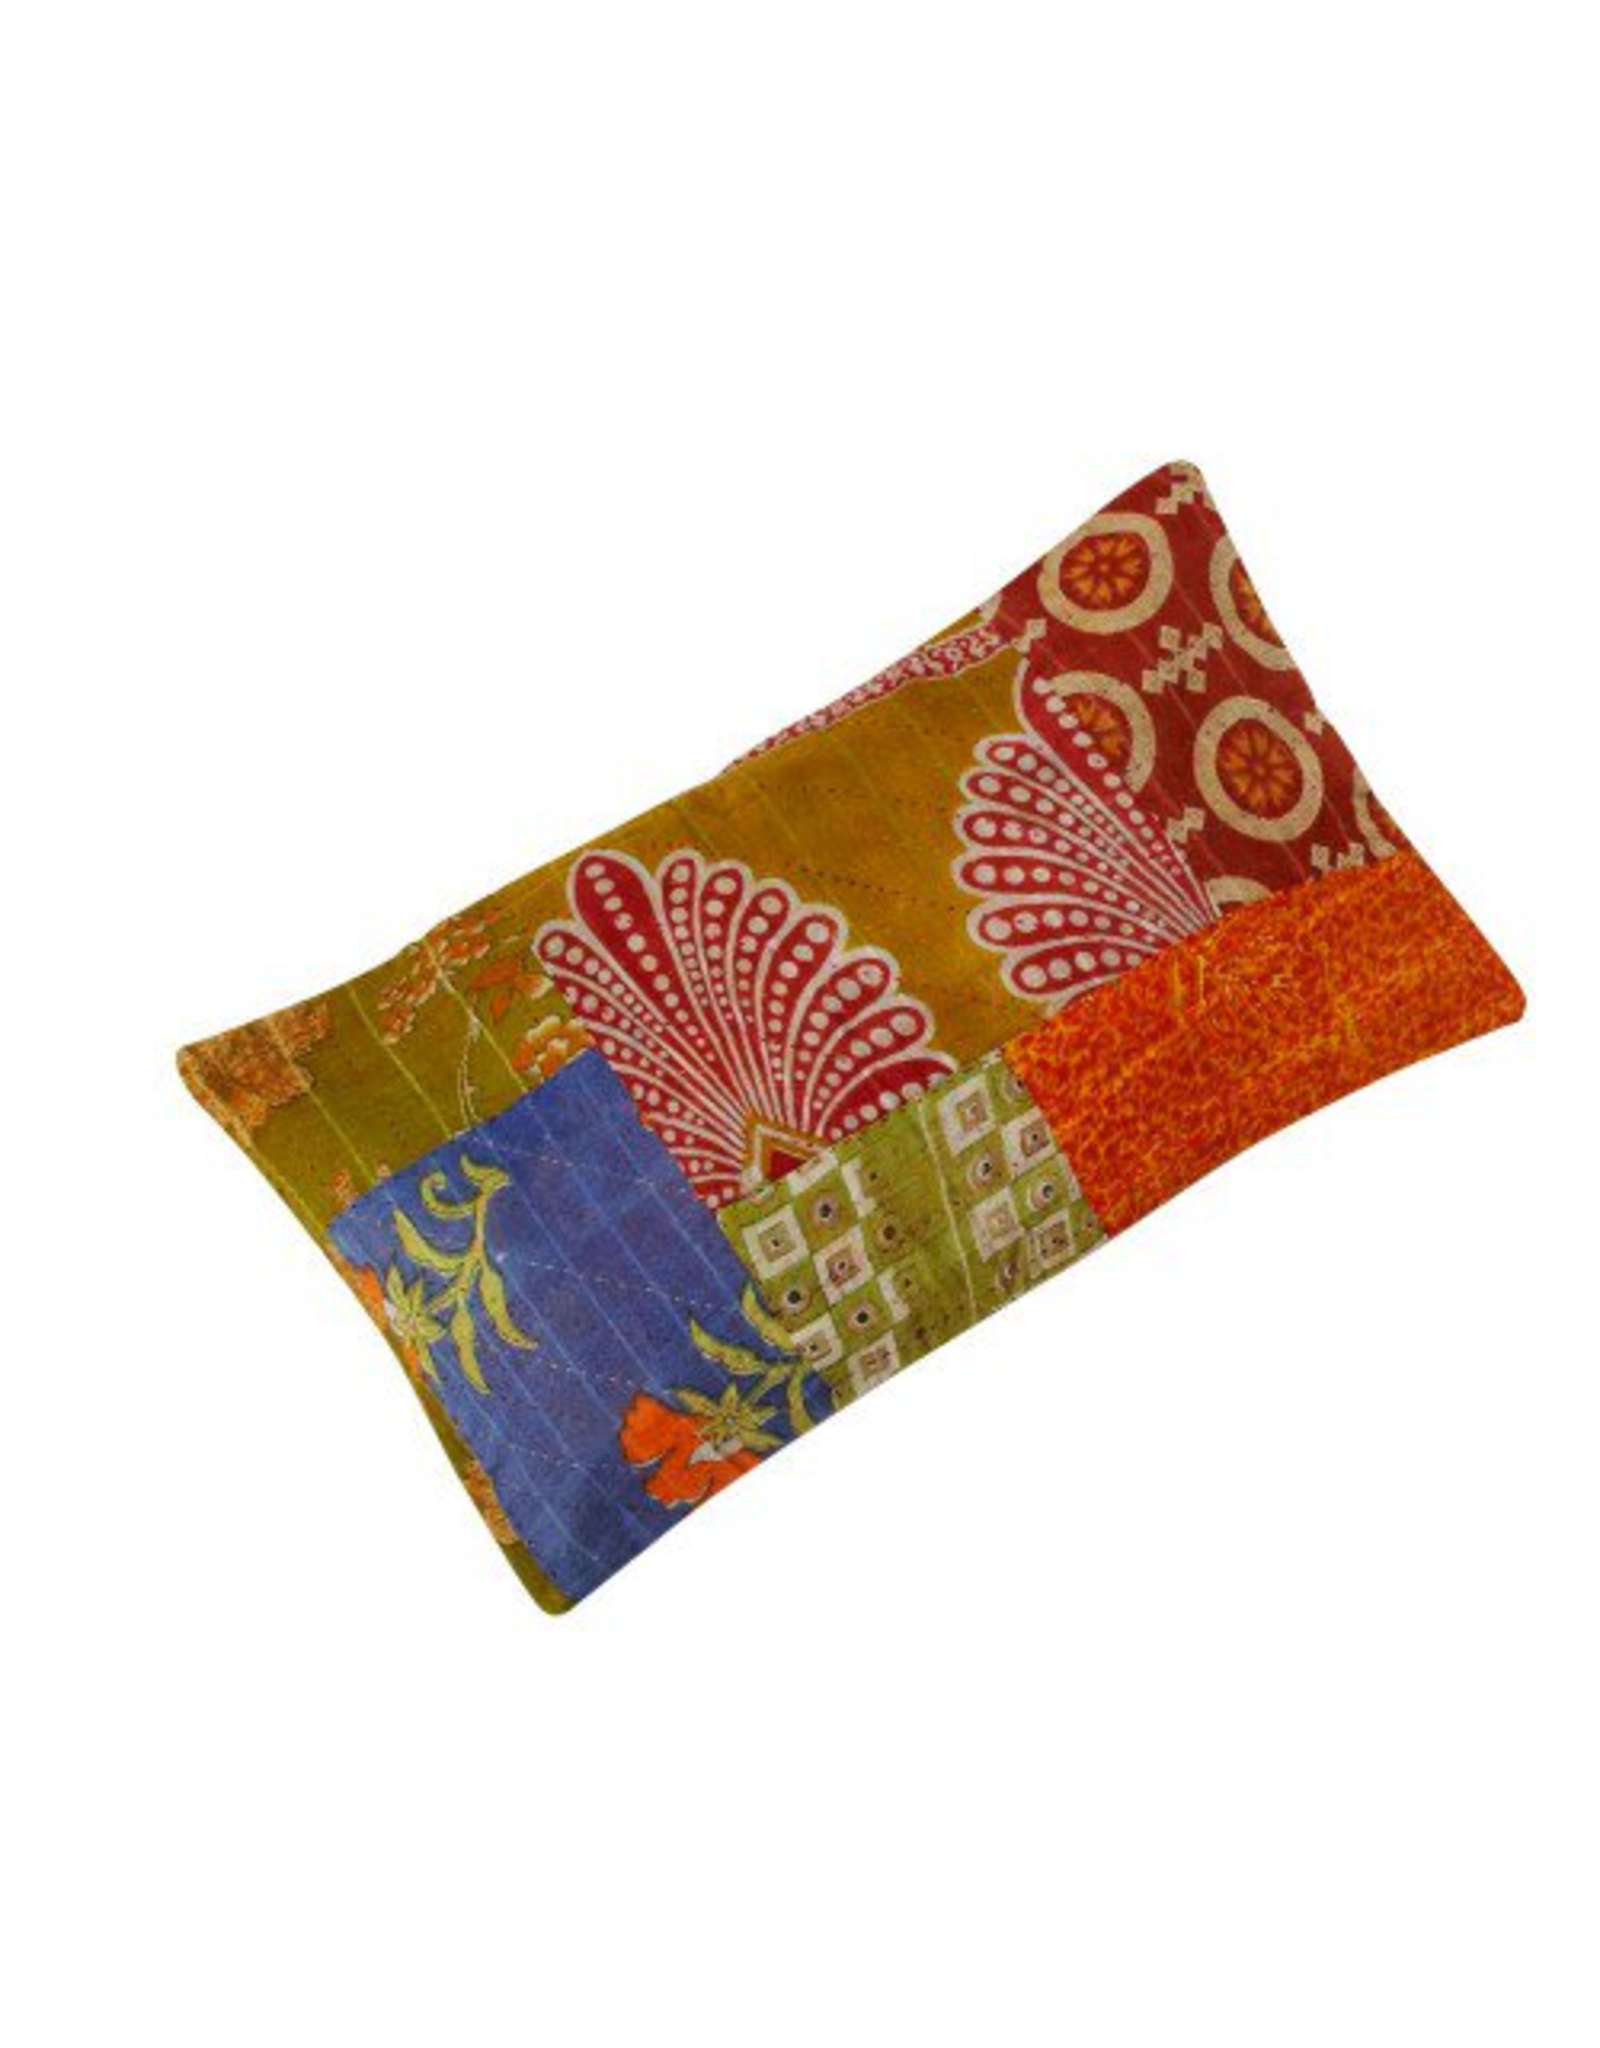 Bangladesh, Sari Motif Cushion